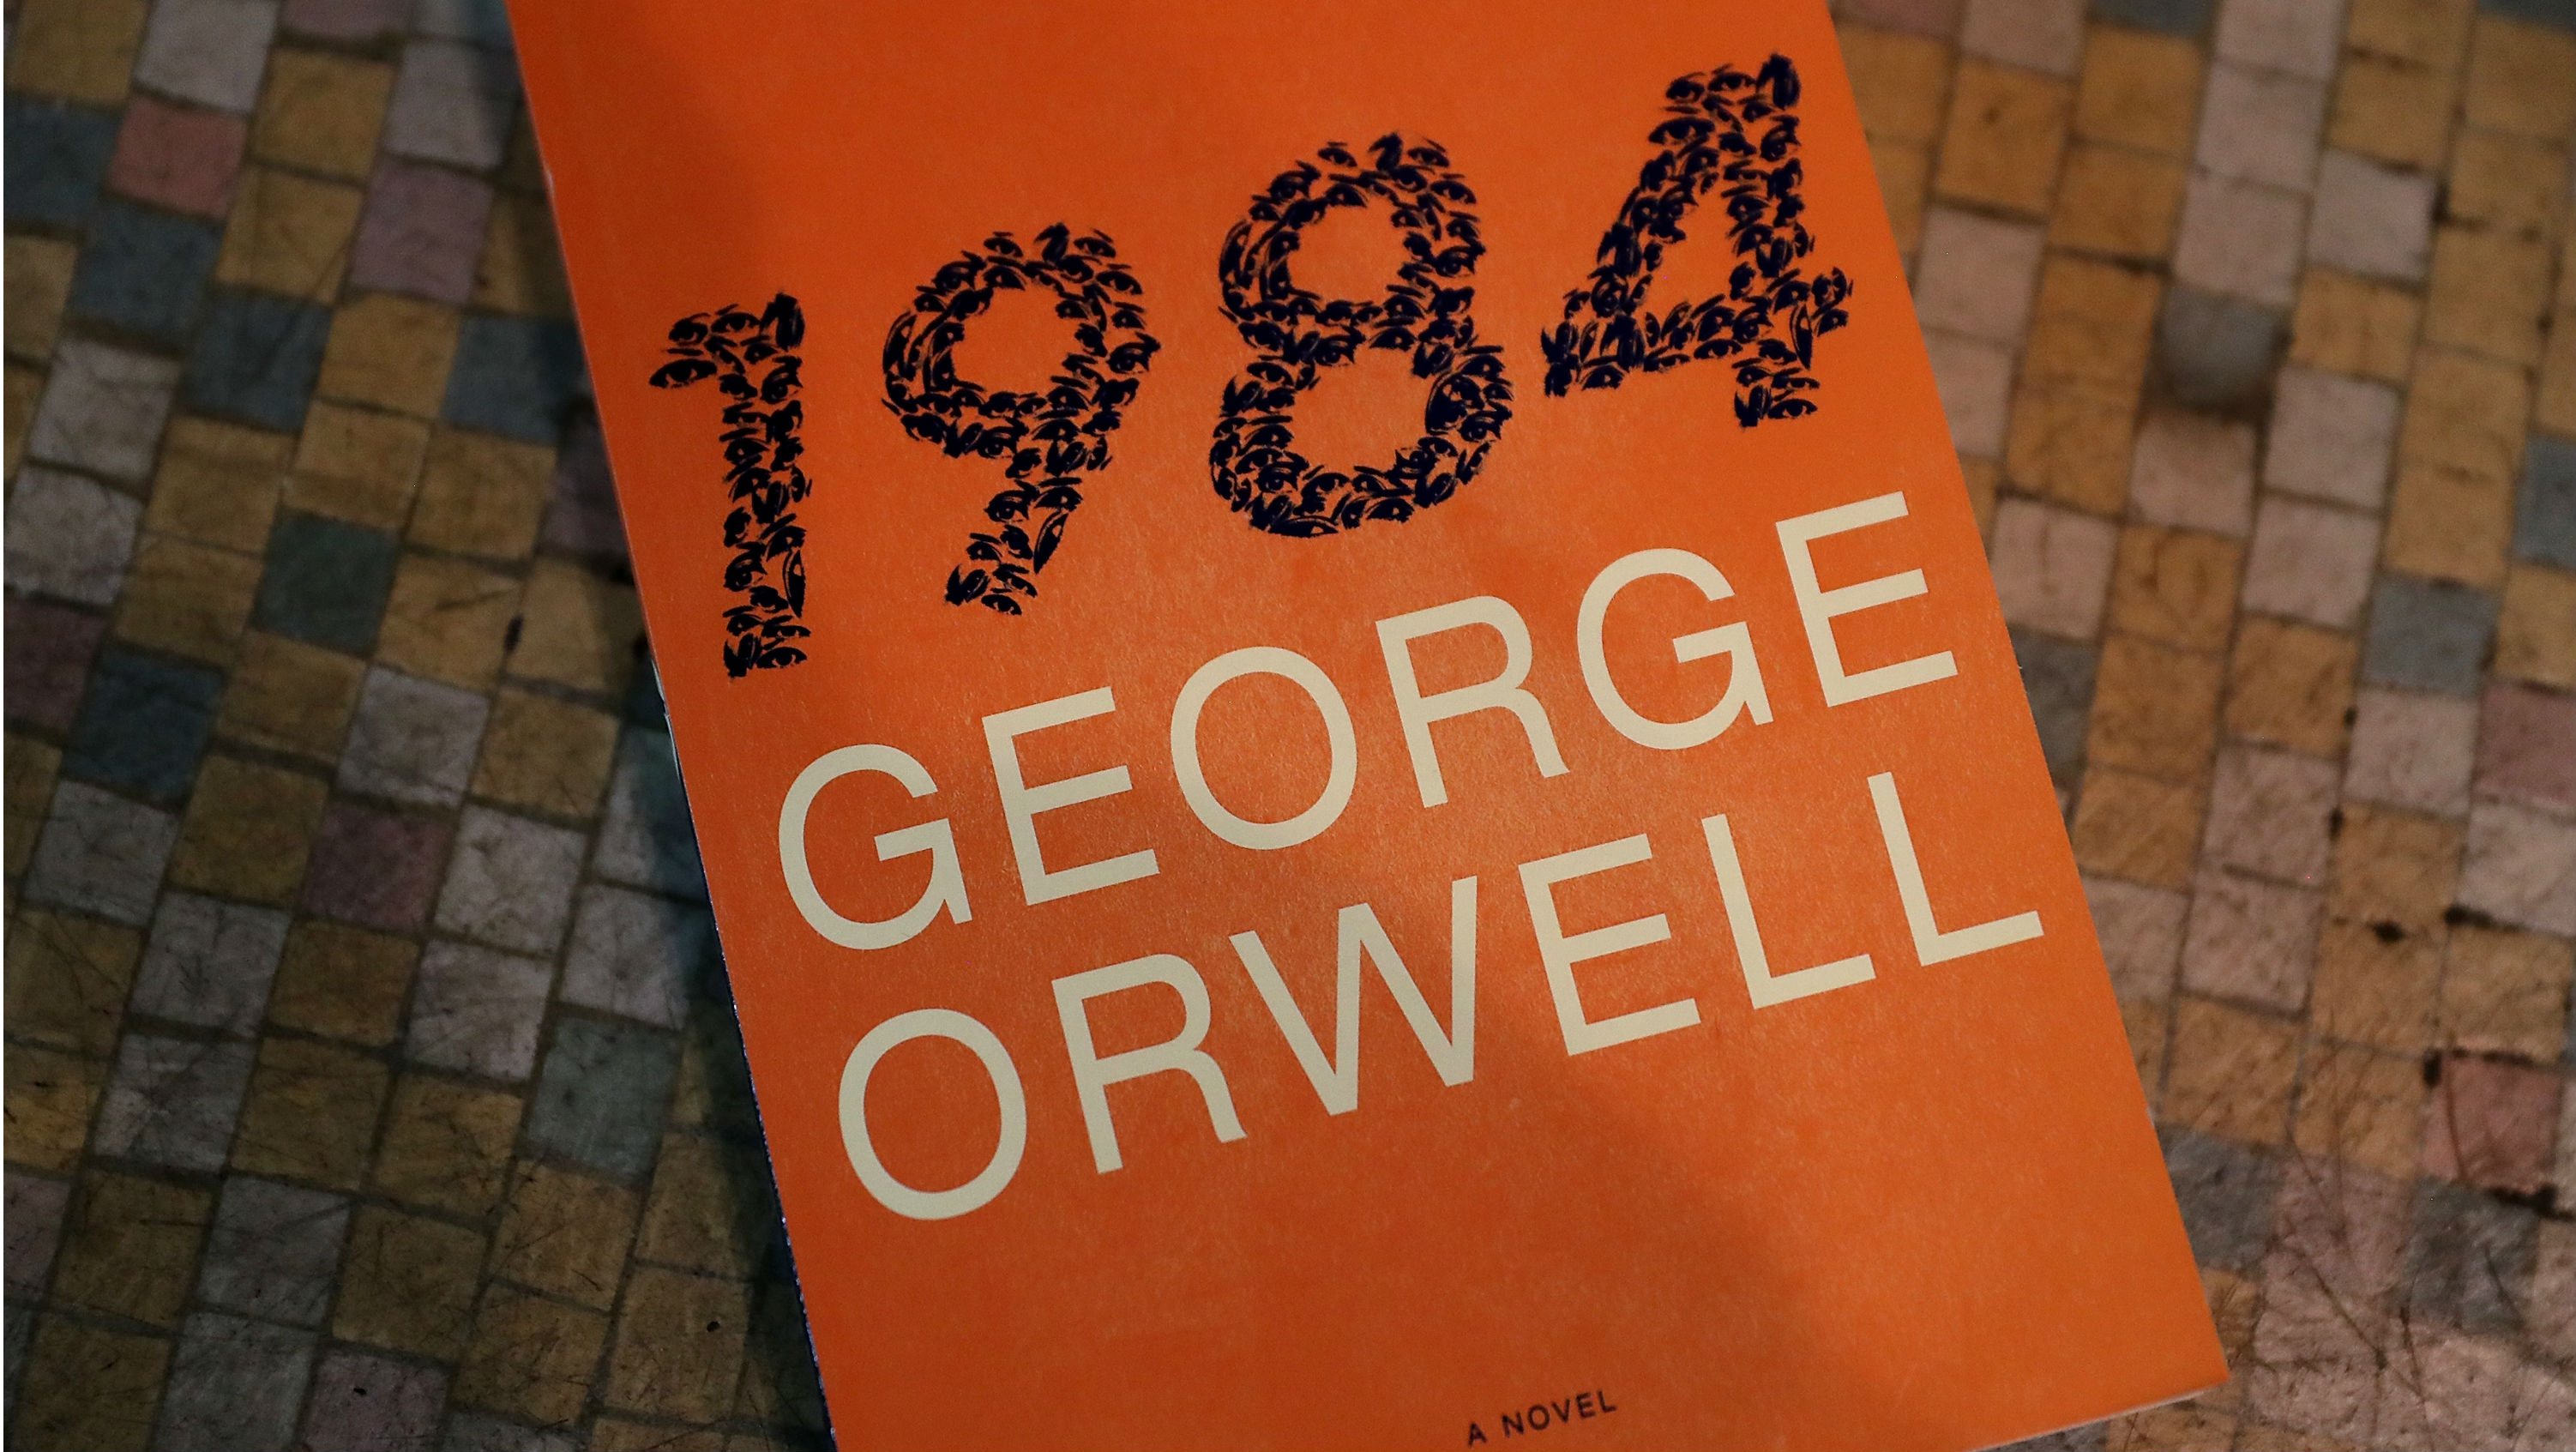 a analysis of the terror of totalitarianism in 1984 a novel by george orwell One of the world's biggest fears is totalitarianism the thought of a government that has complete and utter control continues to alarm people today, remembering the communism scare years ago and other instances of absolutism george orwell's 1984 was a coming of age novel that portrays a negative .